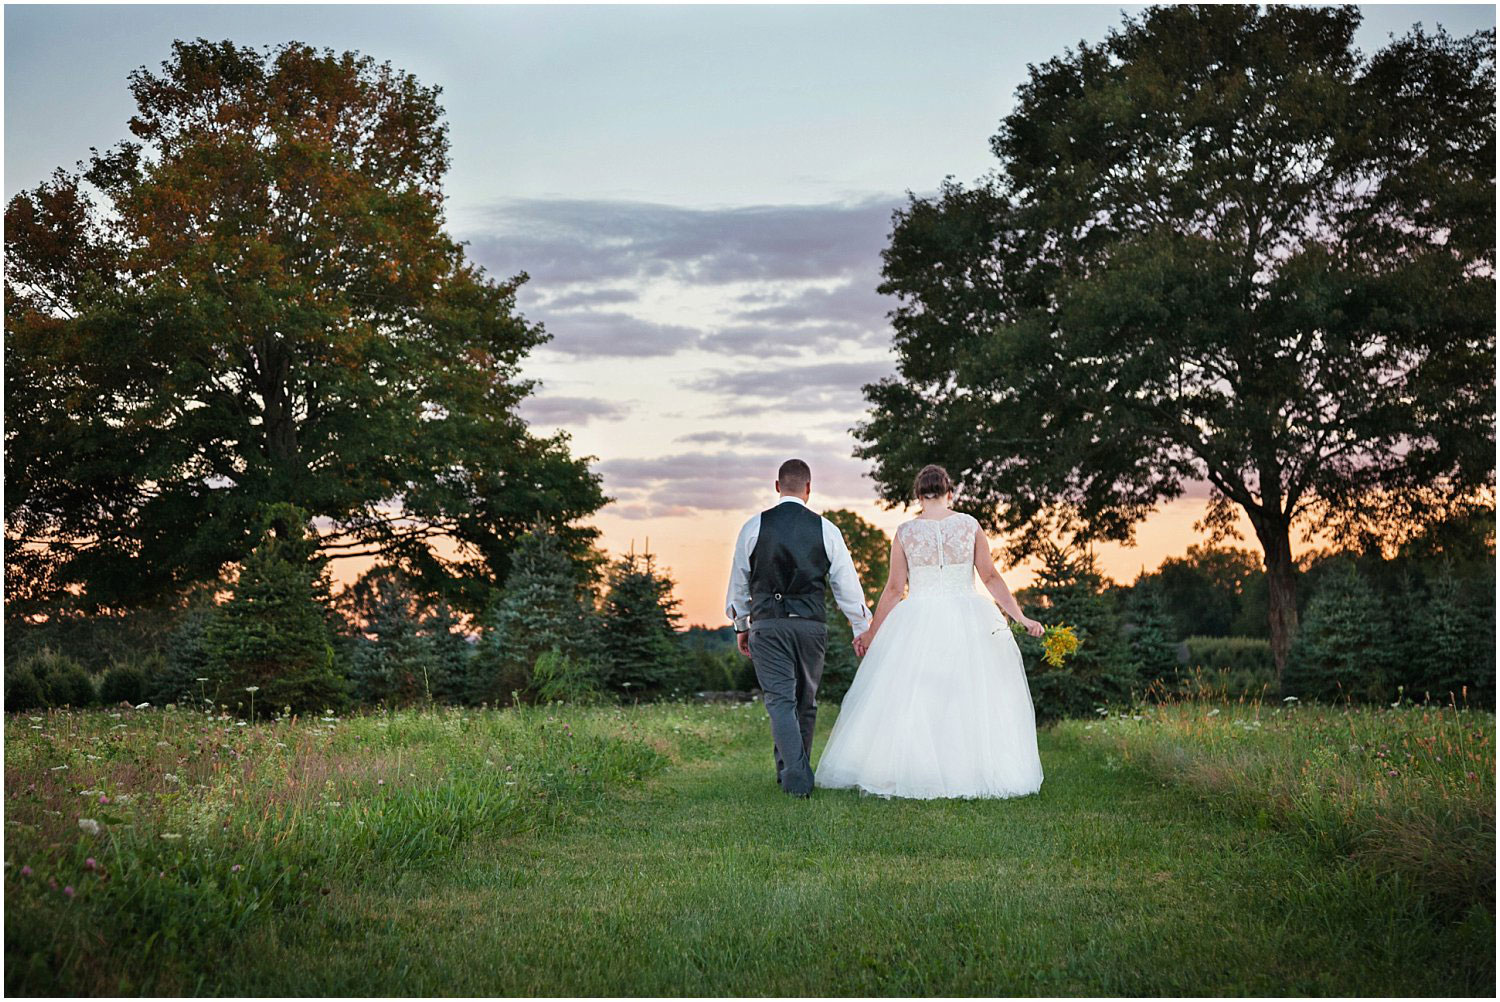 allen-hill-farm-wedding-brooklyn-connecticut-nicole-chaput-photography-006.jpg